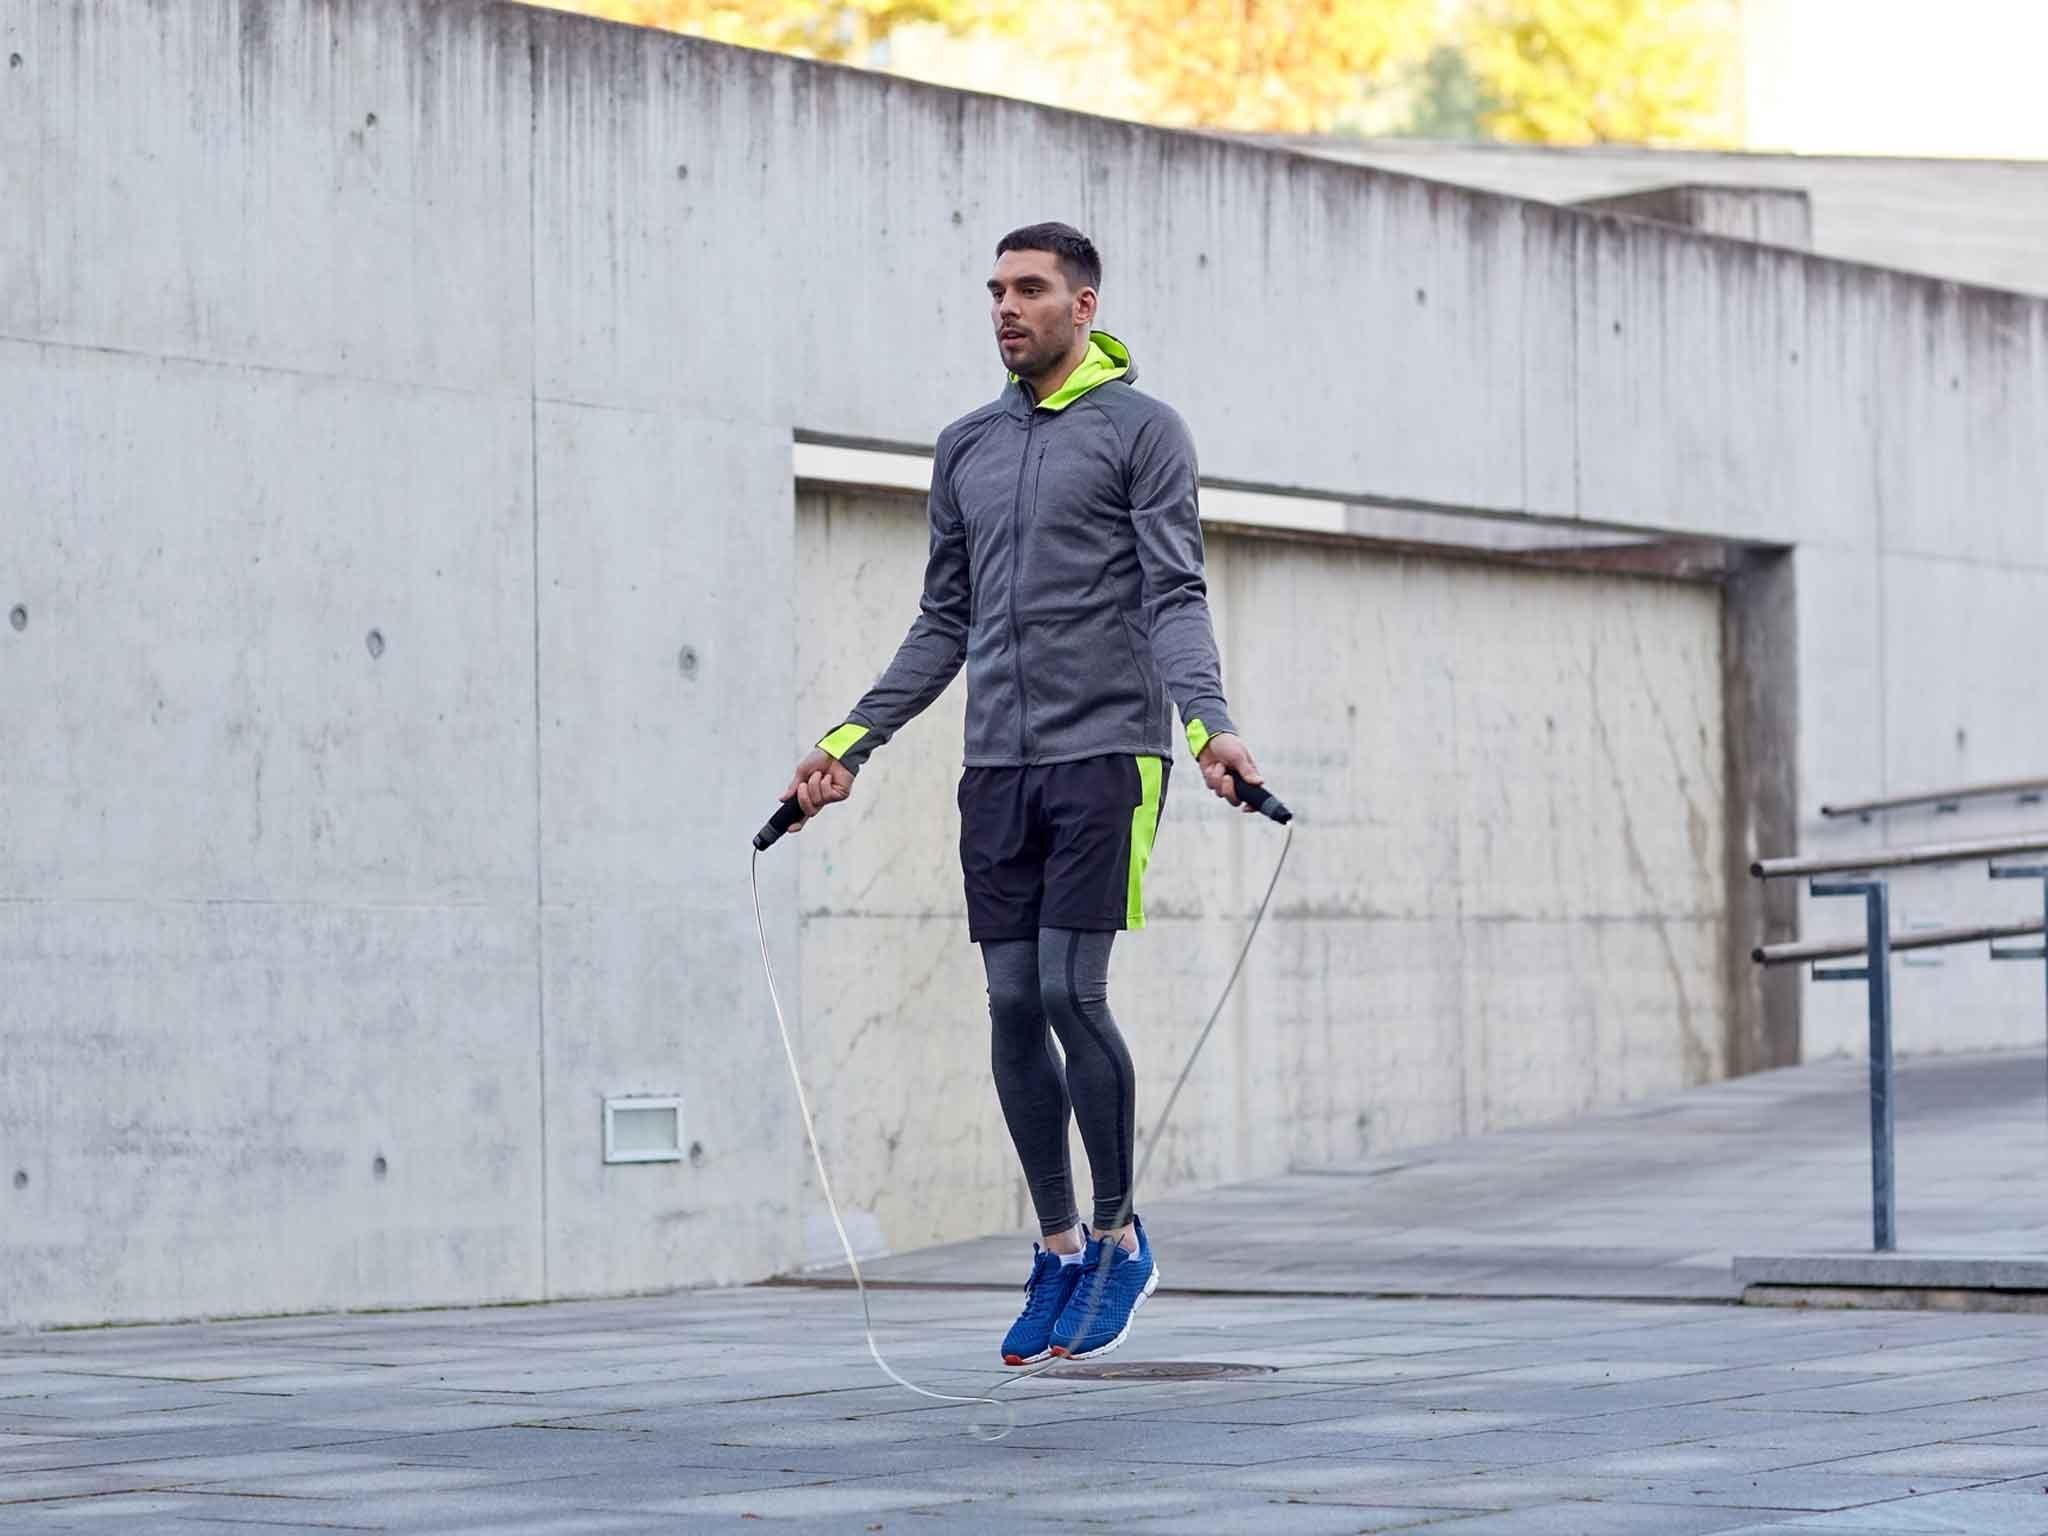 8 Best Skipping Ropes The Independent